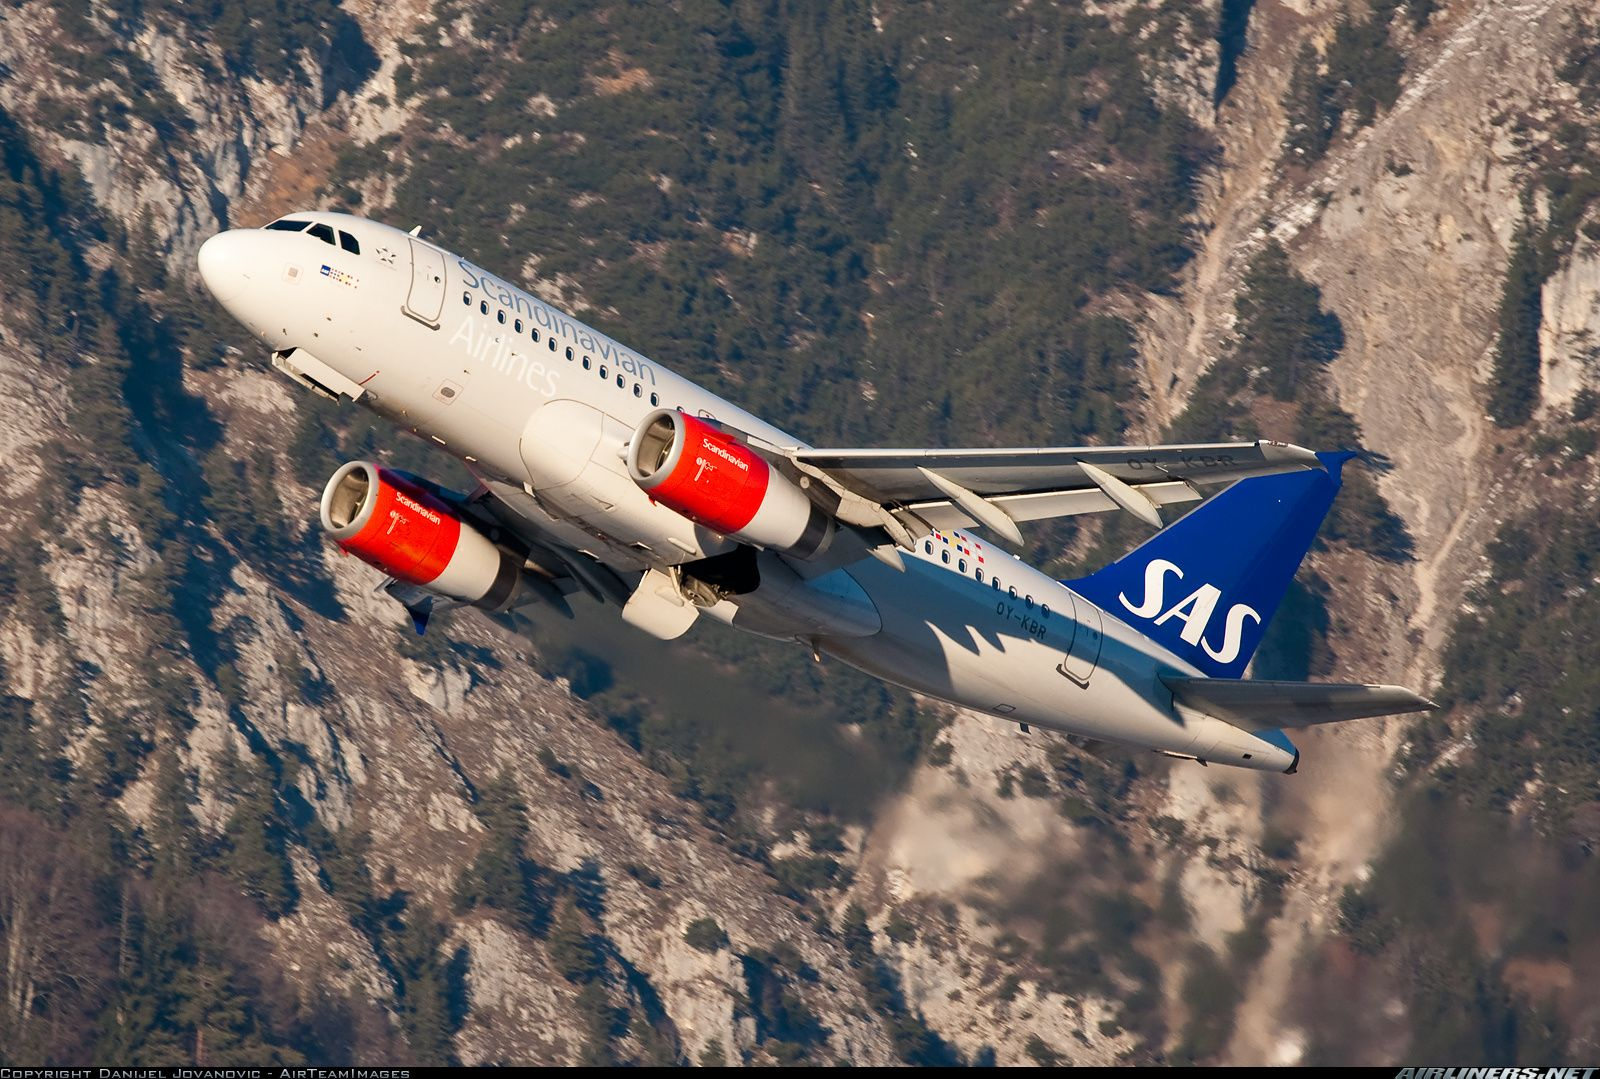 Photos Airbus A319 131 Aircraft Pictures Airliners Net Scandinavian Airlines System Sas Airlines Airbus